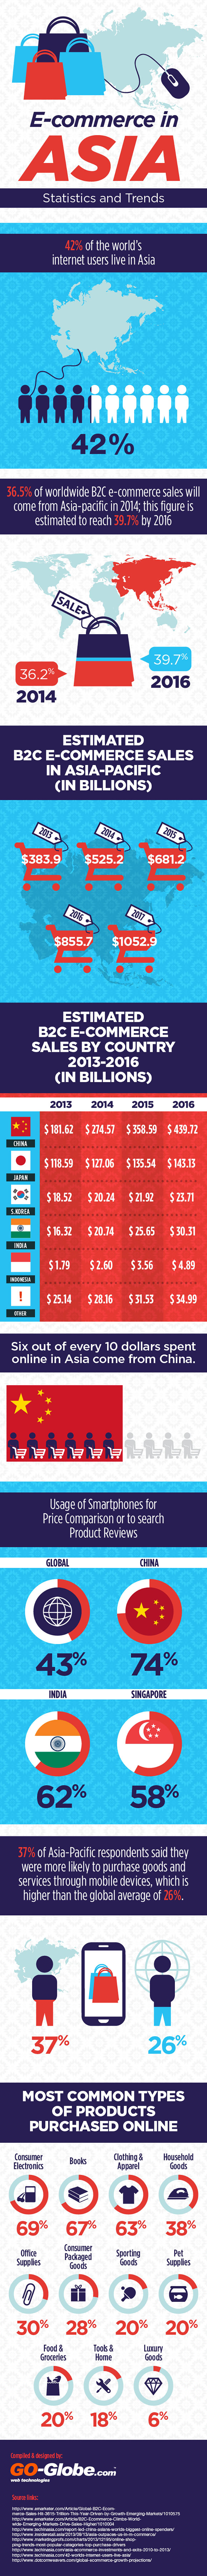 ecommerce-in-asia